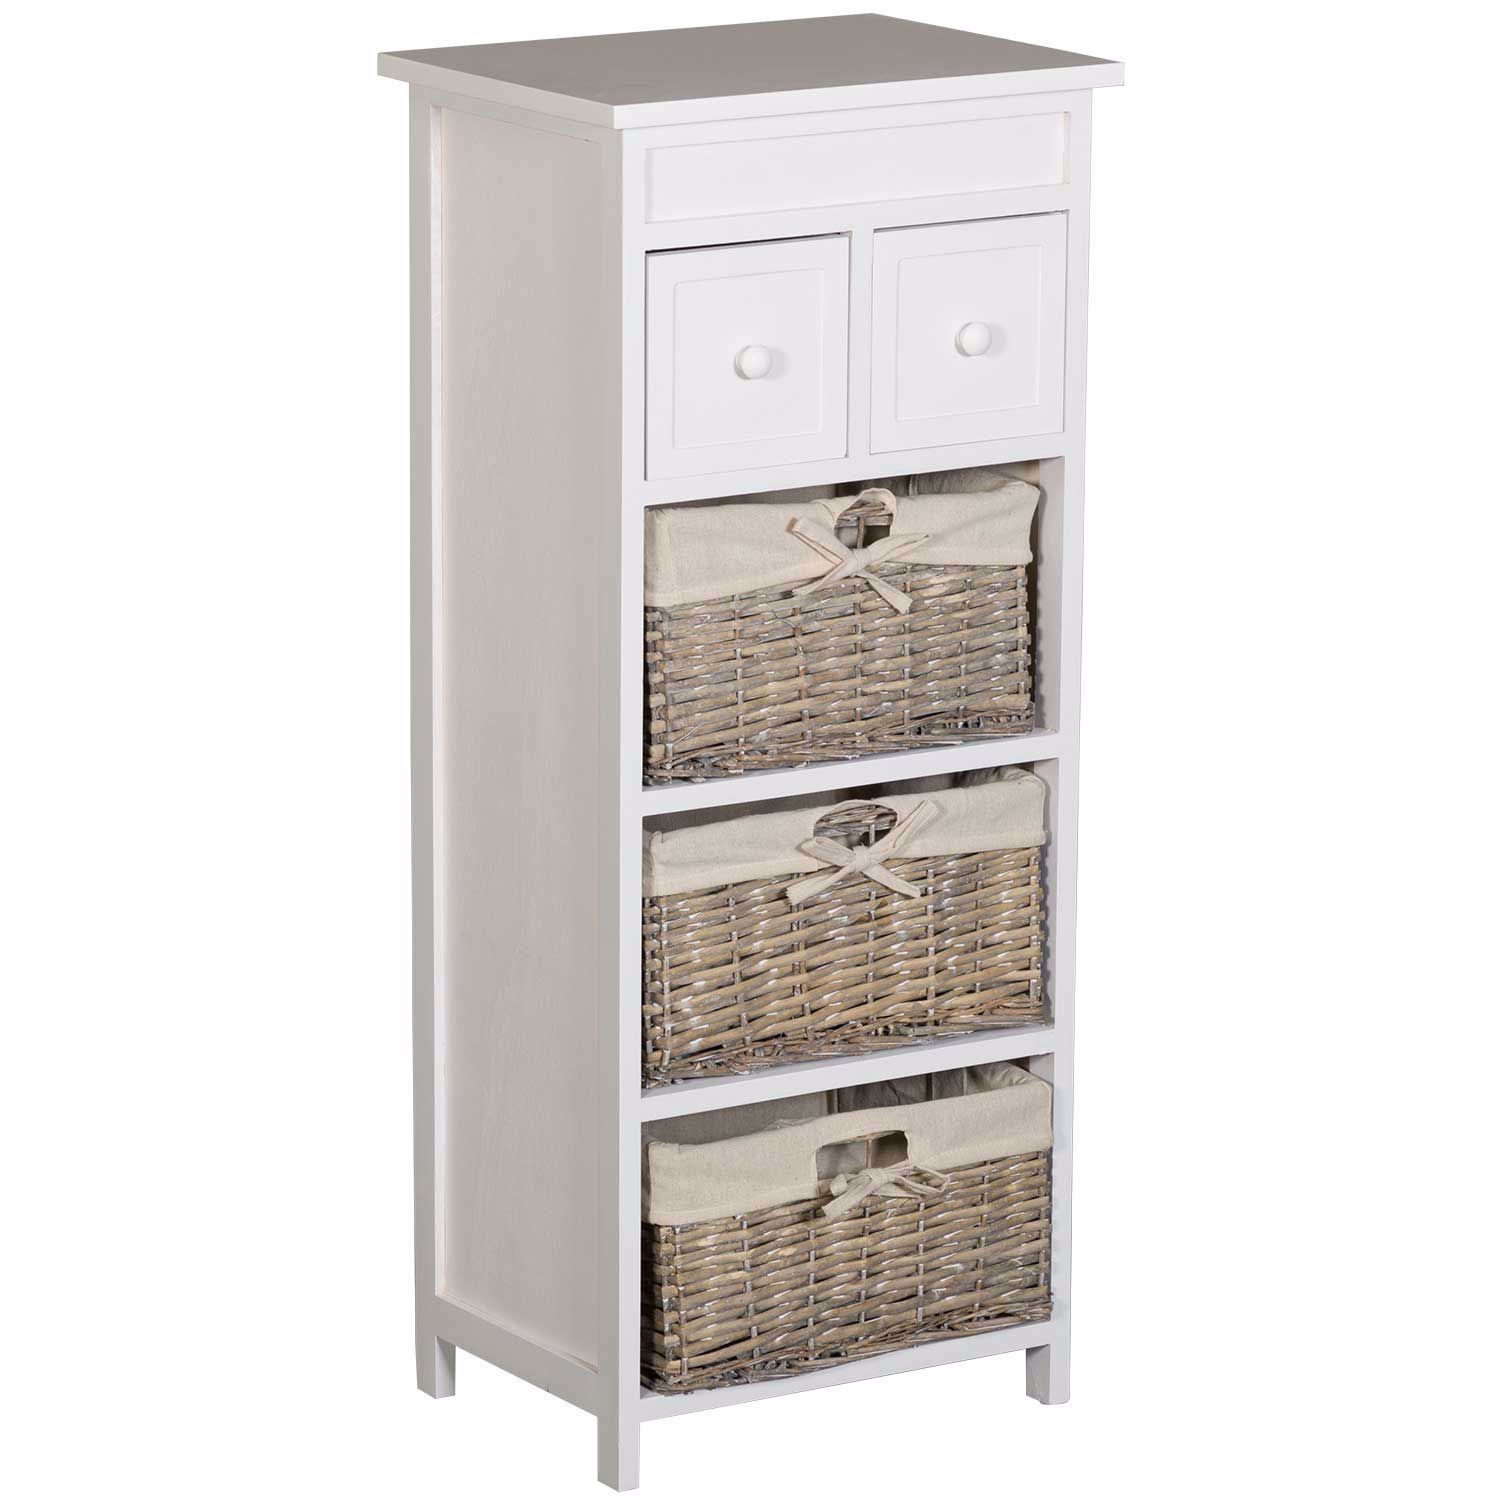 Picture of Three Wicker Basket Accent Storage Tower